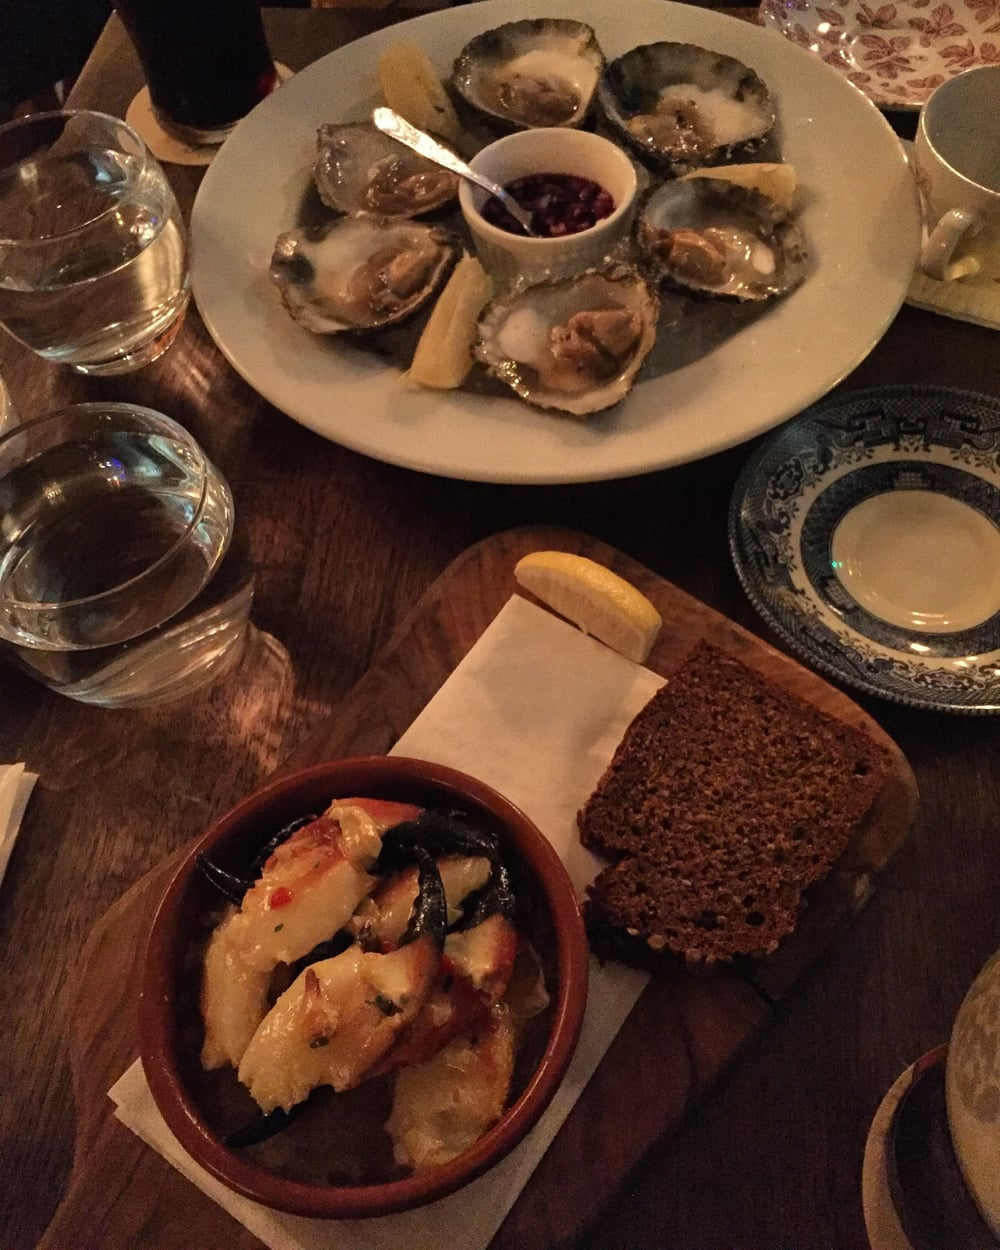 Oysters, Guinness and crab so good I weep thinking about it.